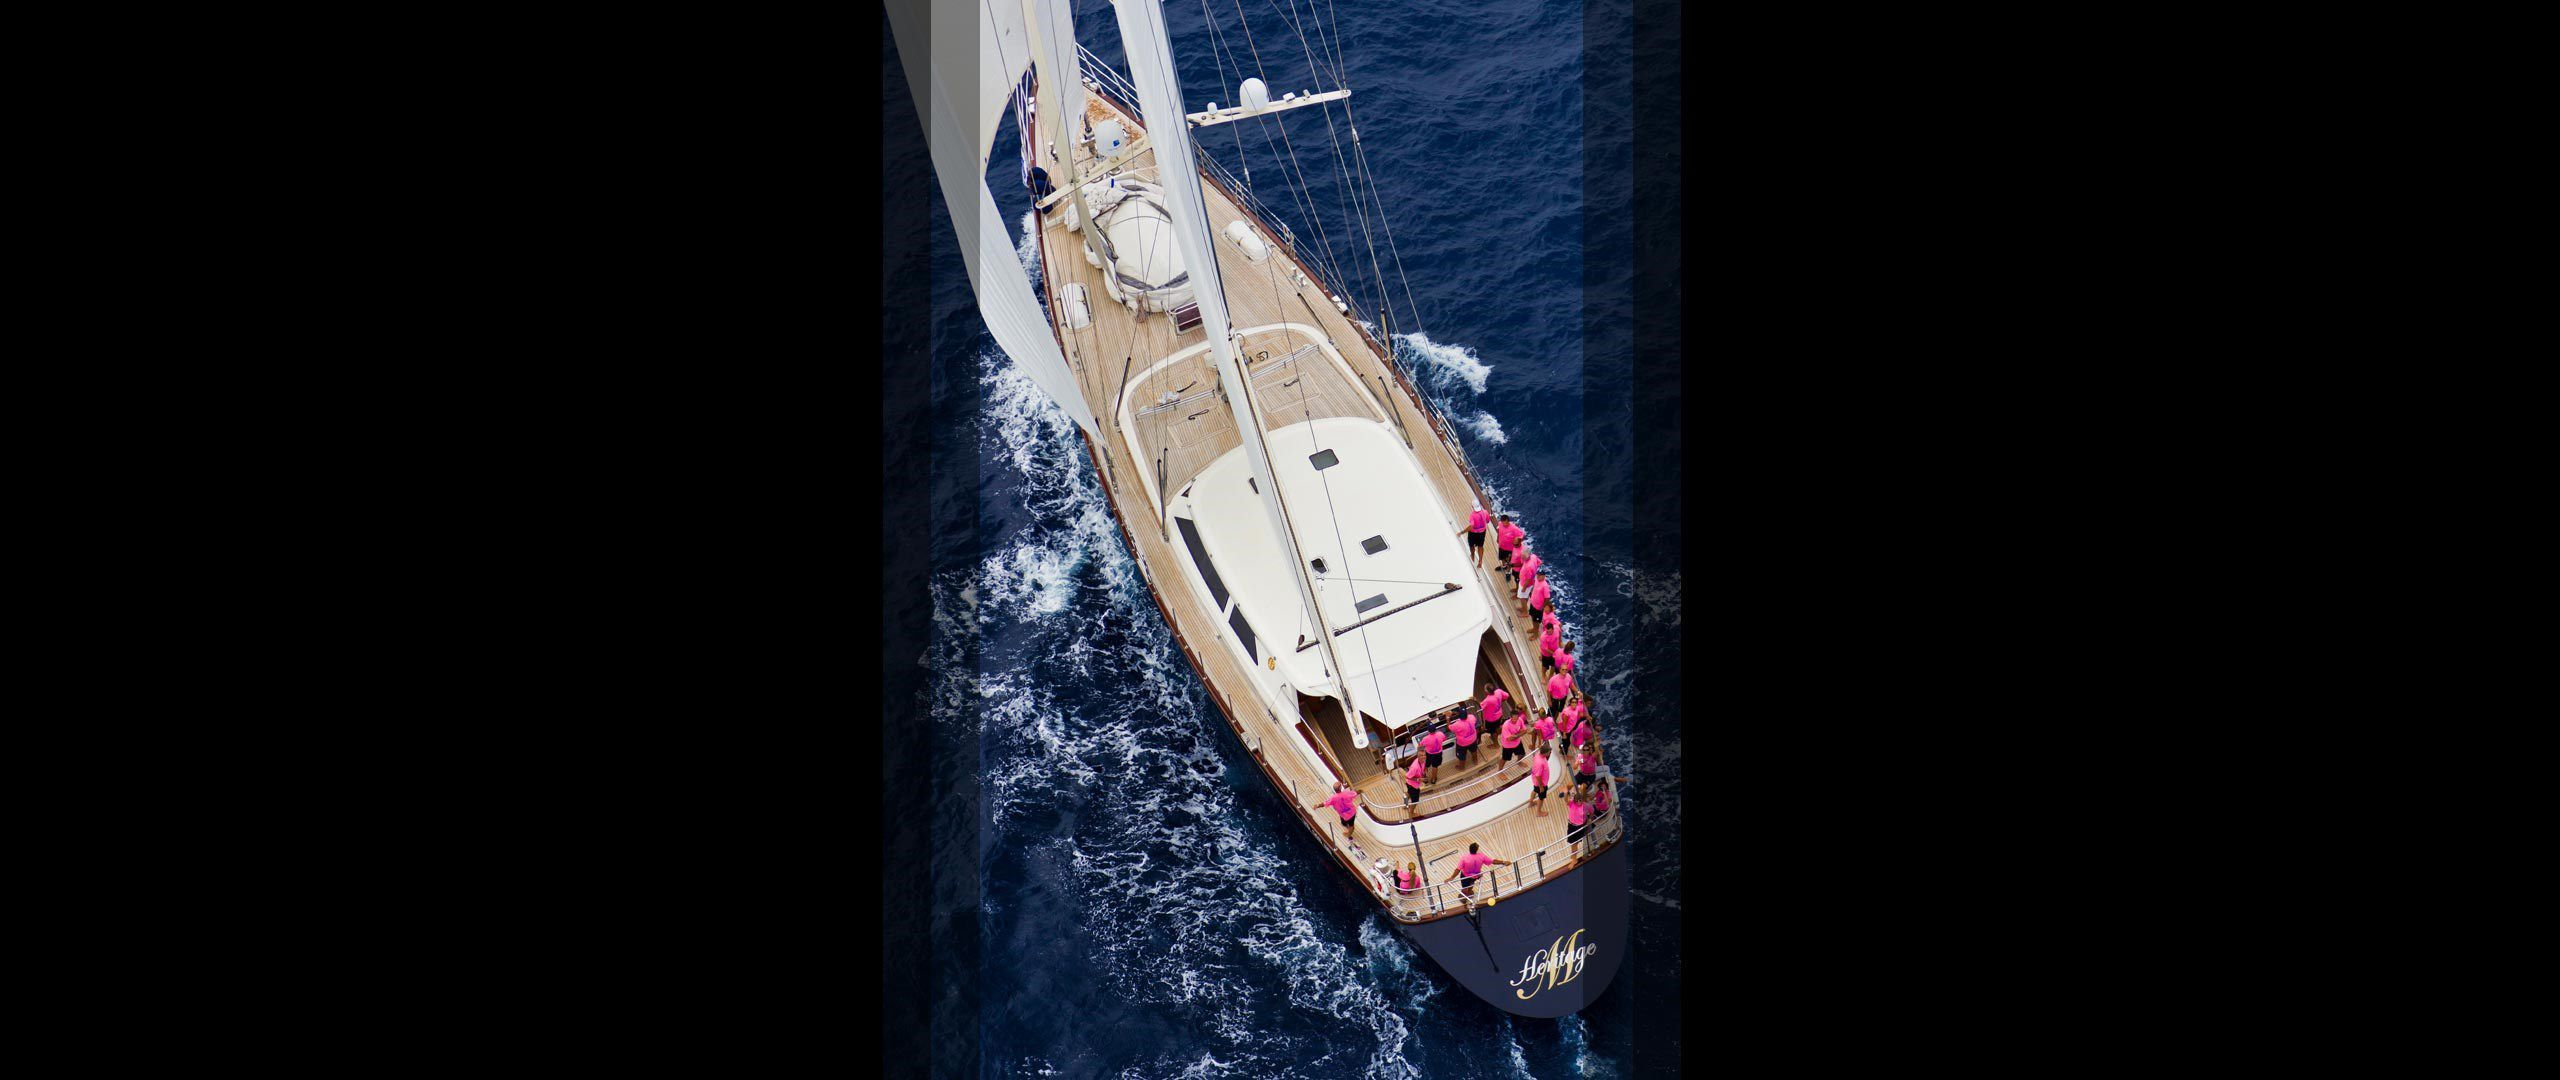 Yacht Heritage M By Pereni Navi - Sailing